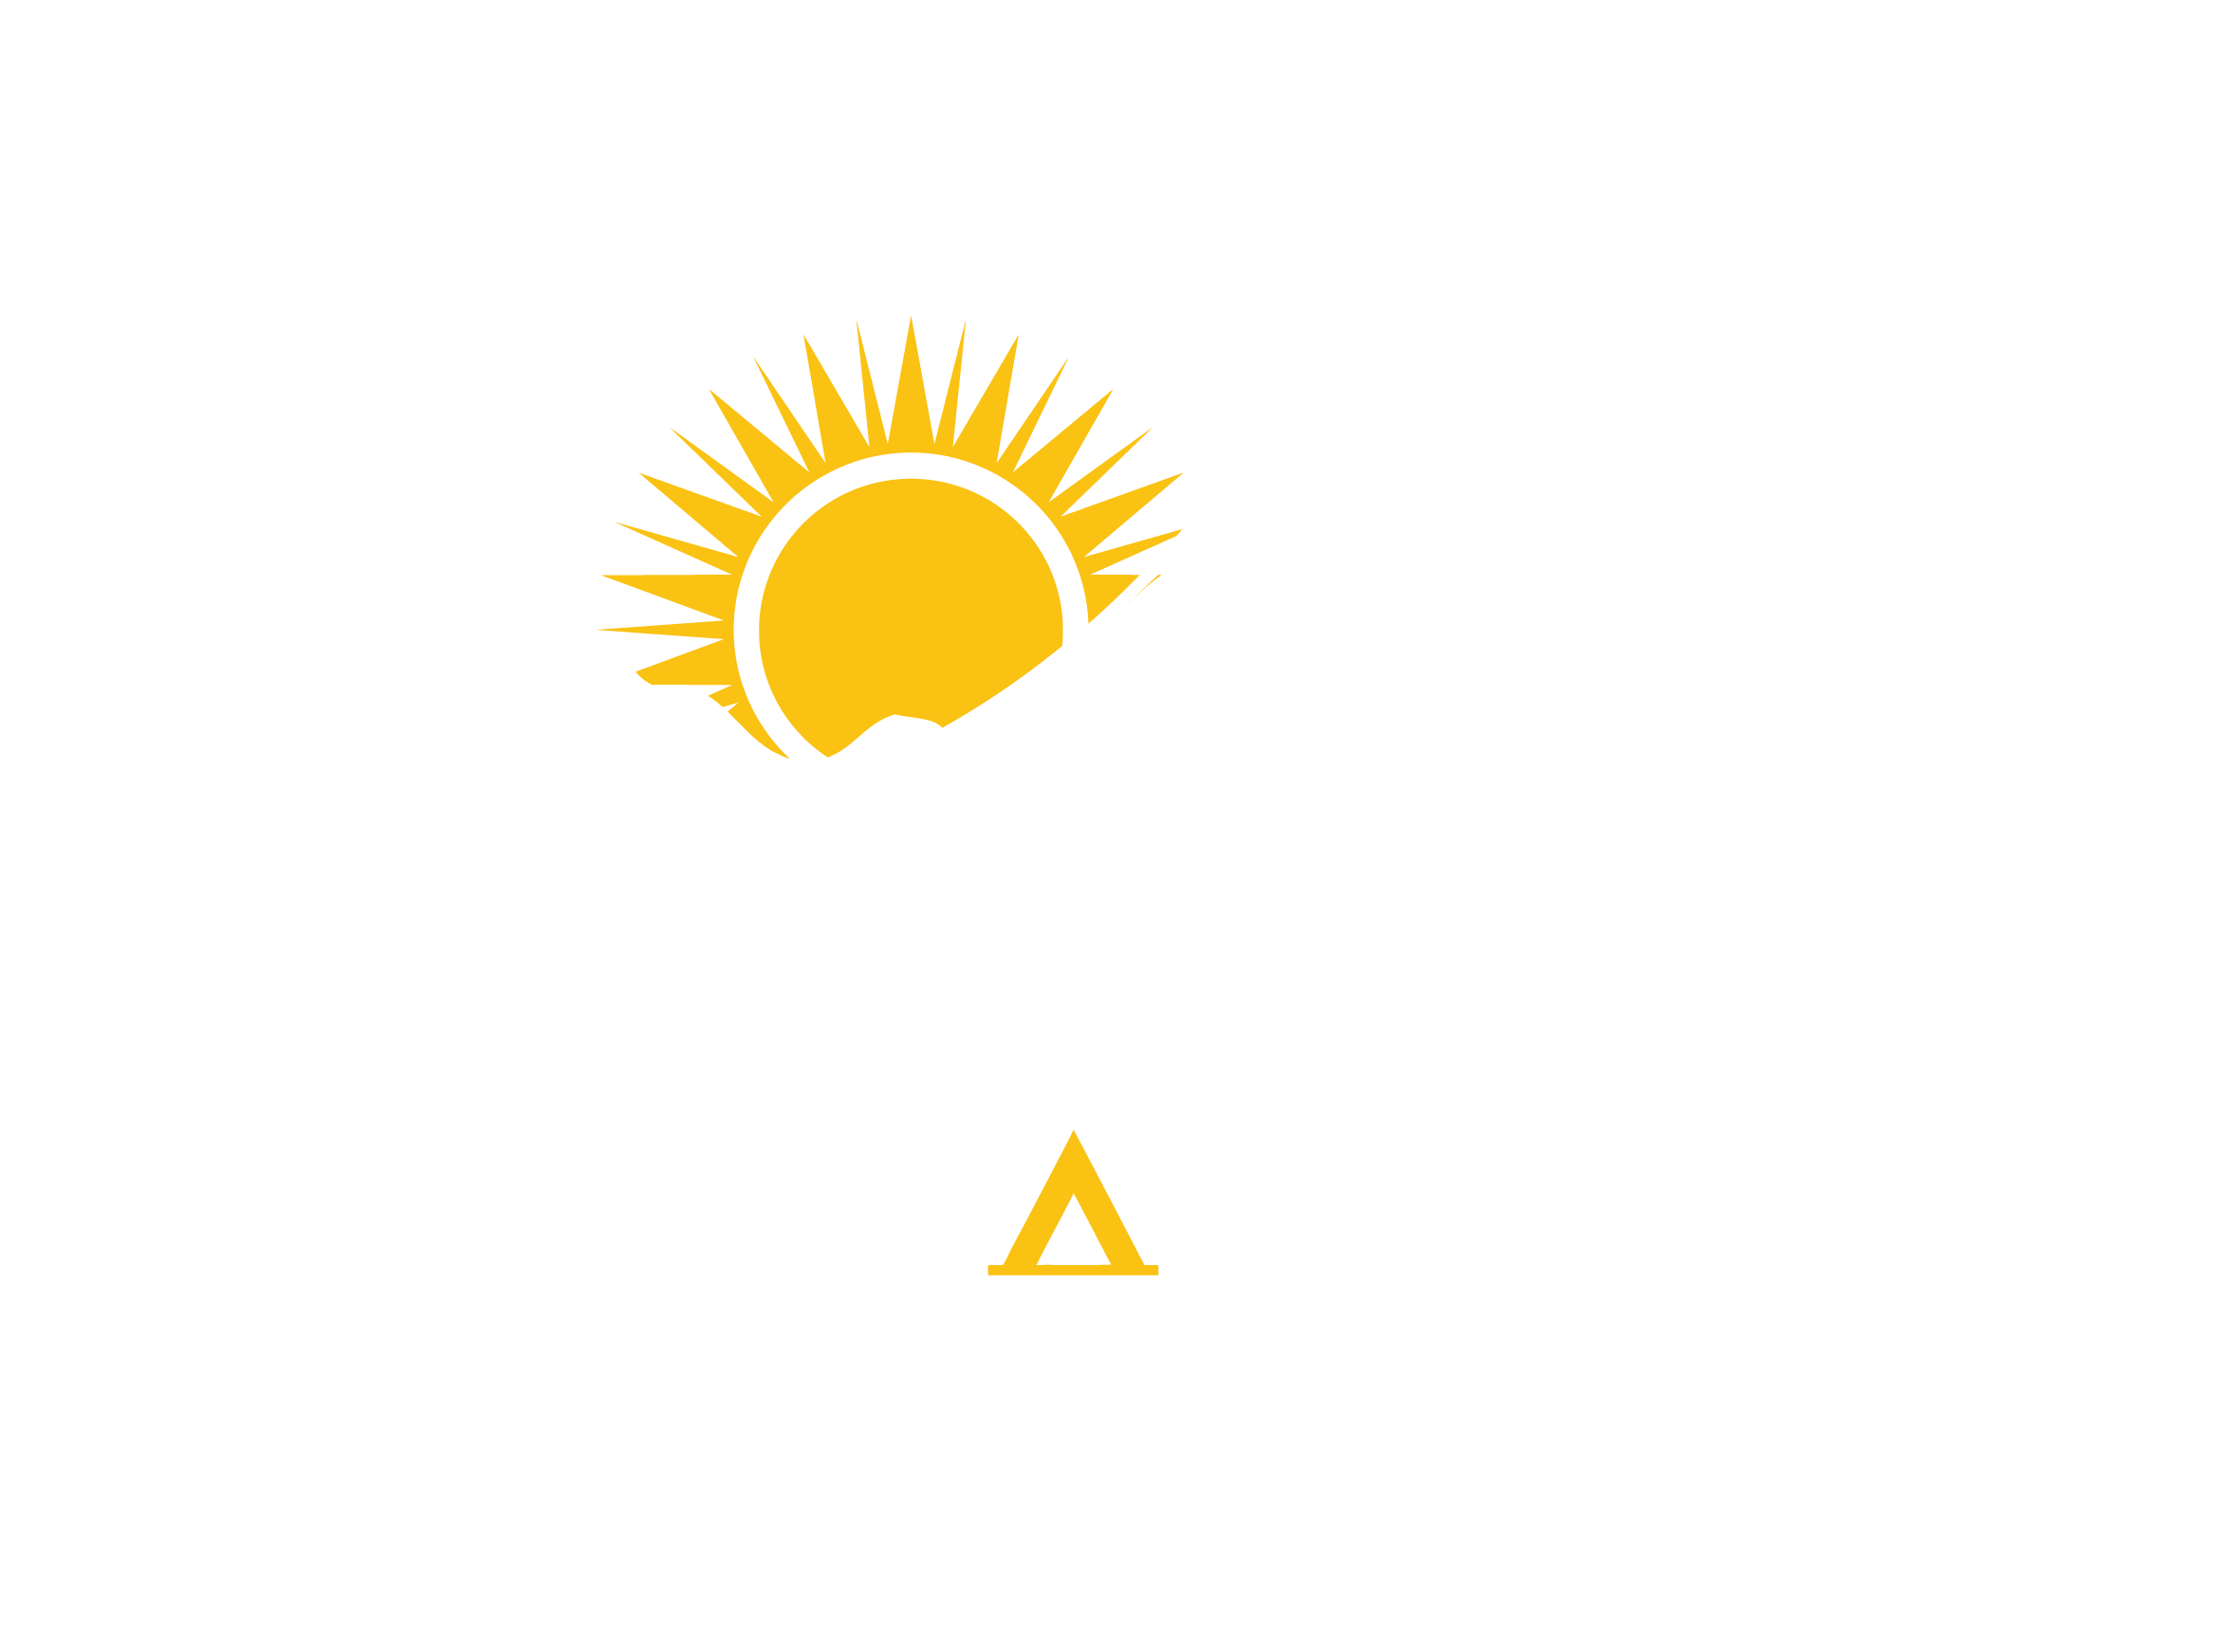 RamahRockies_10Years_vector_white_and_yellow.png